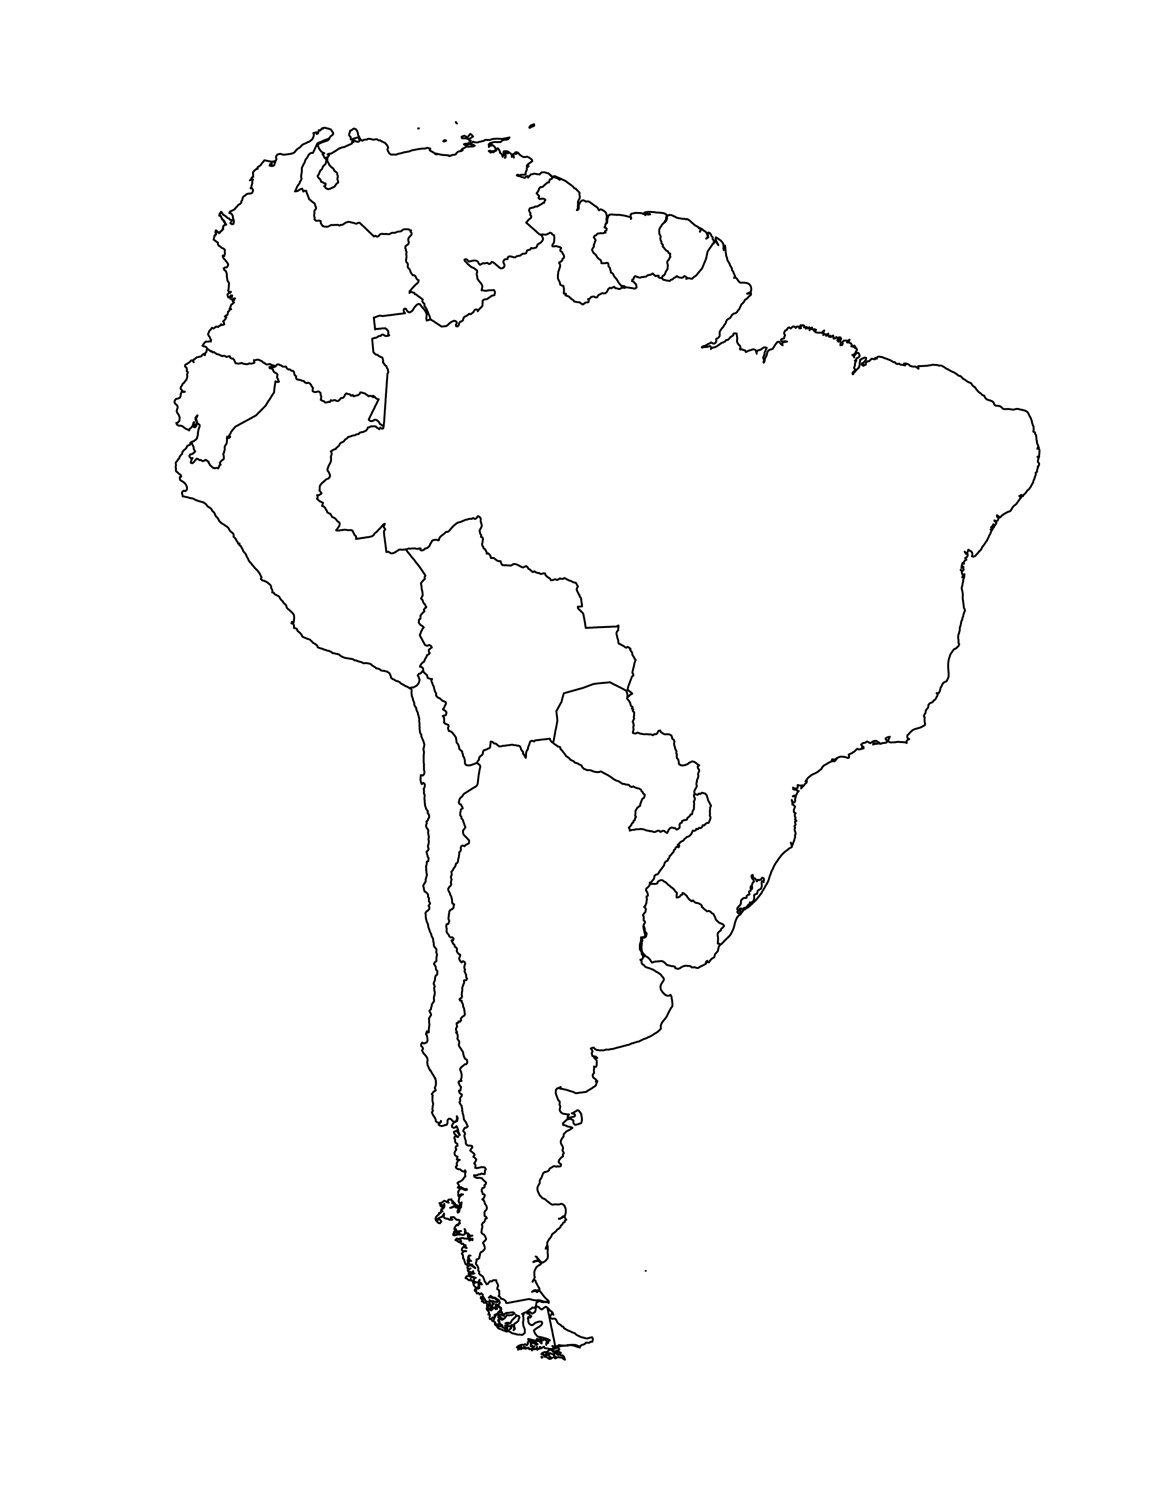 South America Map Outline Printable Map South America Labeled With - Blank Map Of Latin America Printable